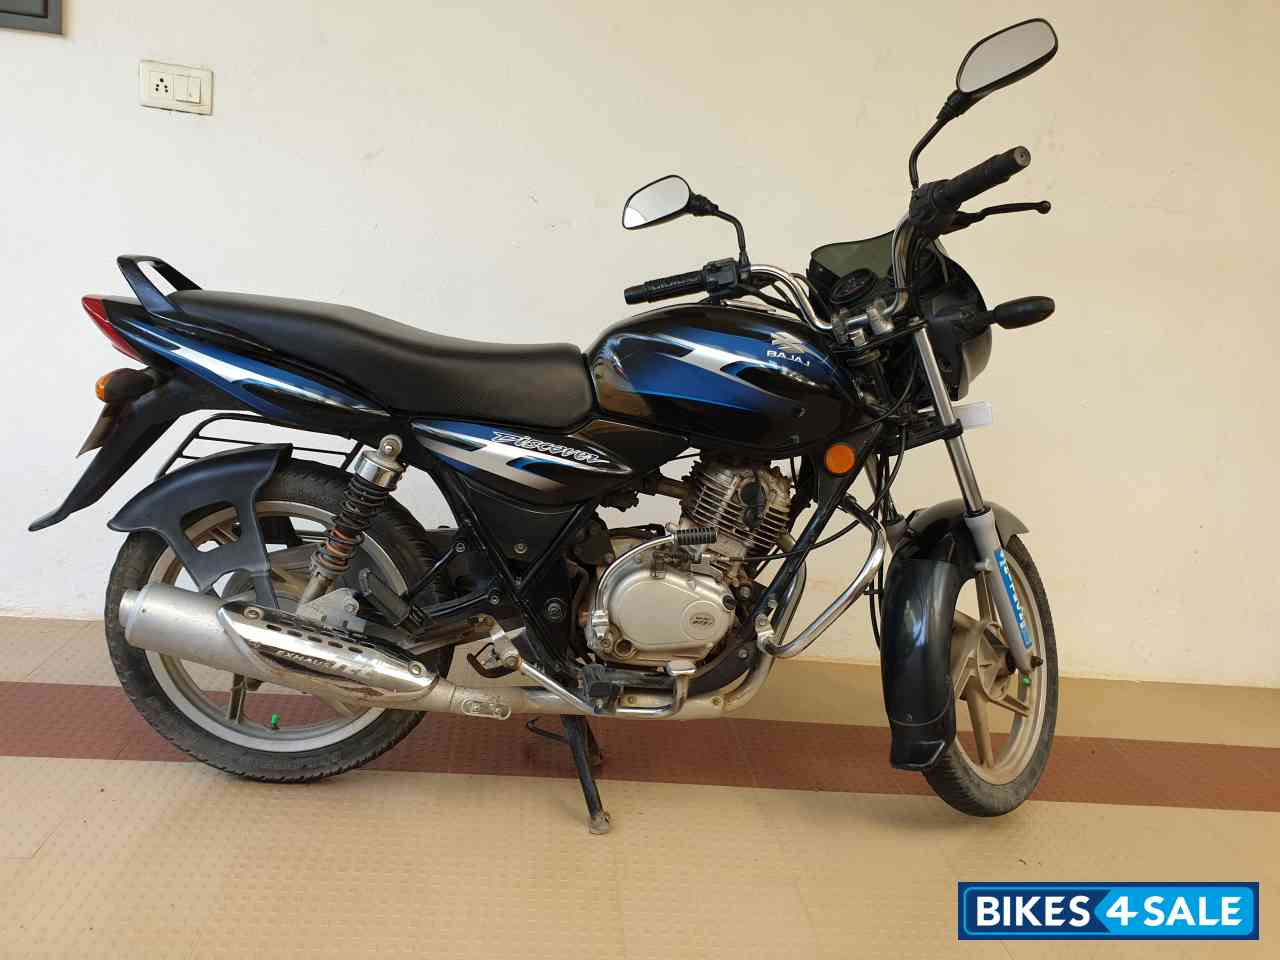 Black With Blue Decals Bajaj Discover DTSi 125